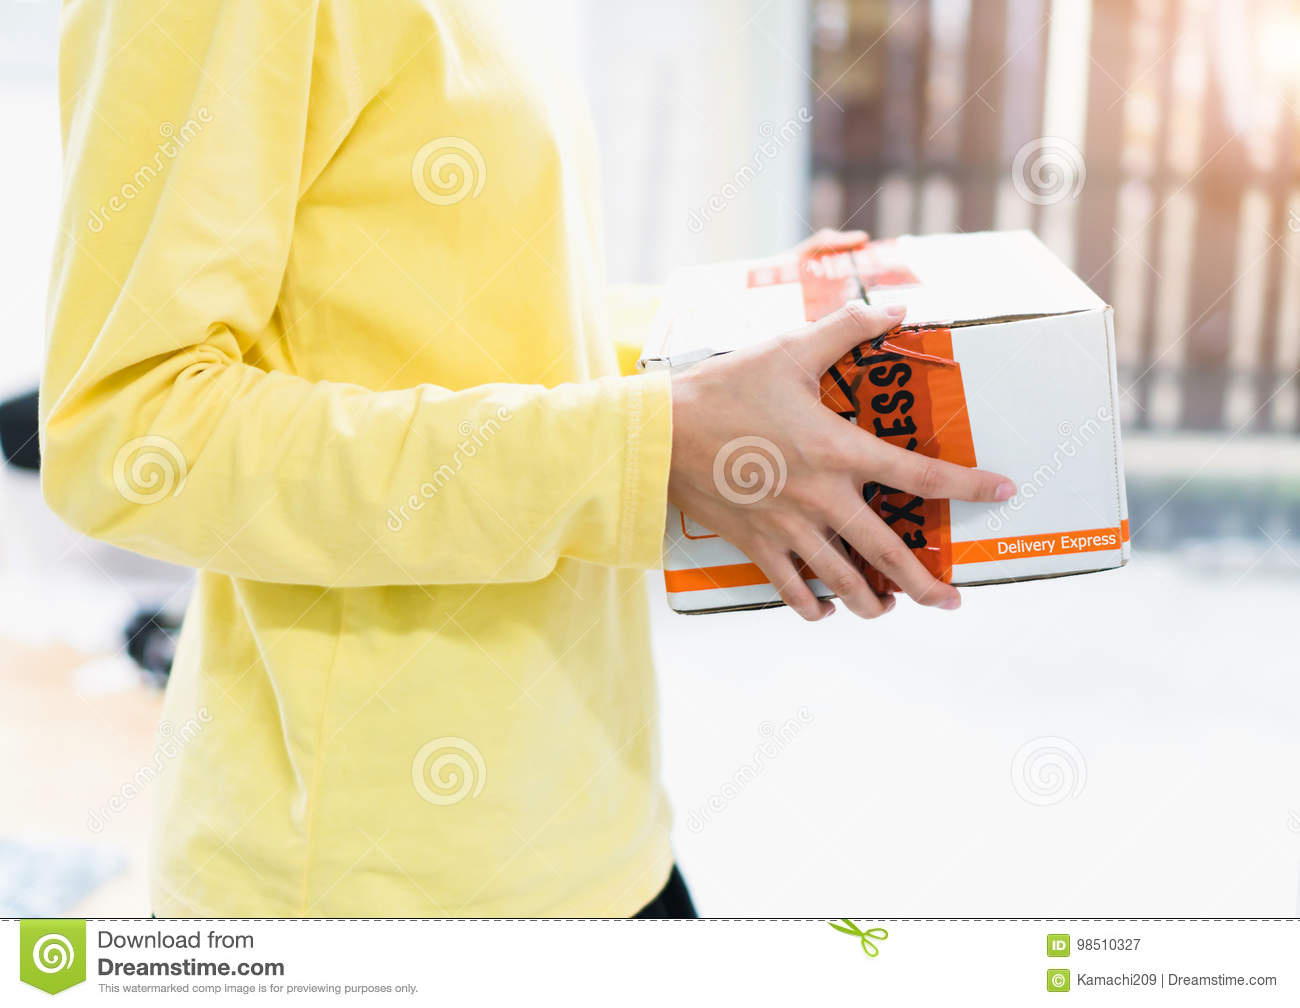 Employees hold parcel damaged before delivery to customer. The company is responsible for replacing it.